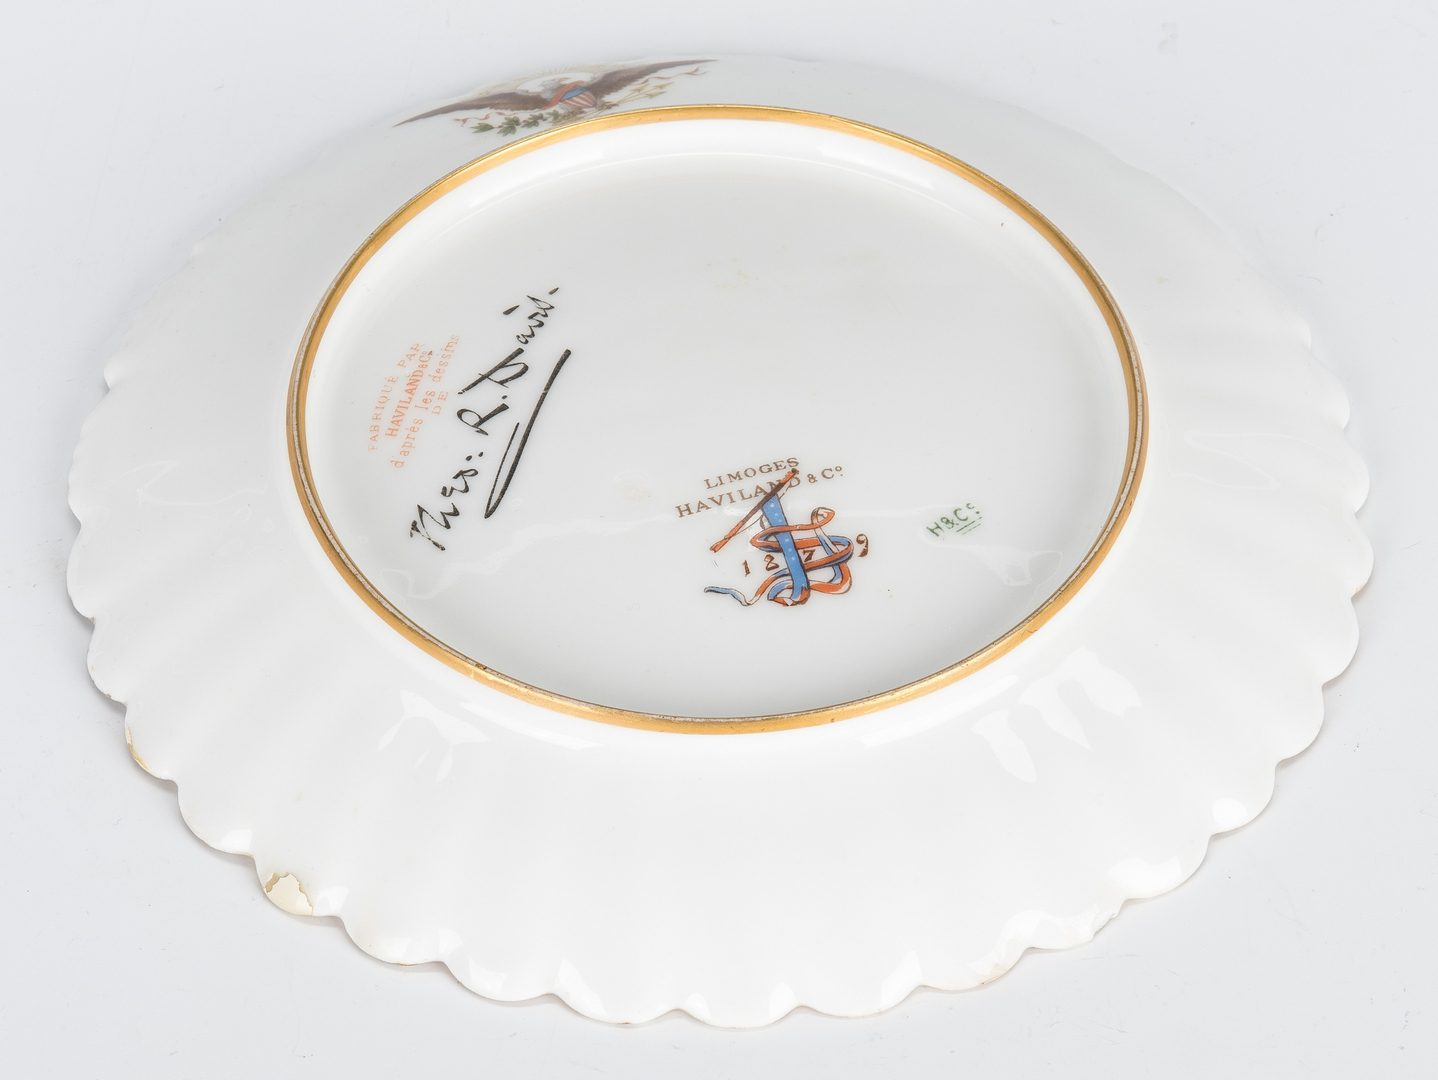 Lot 240: Rutherford B. Hayes White House China Fish Plate